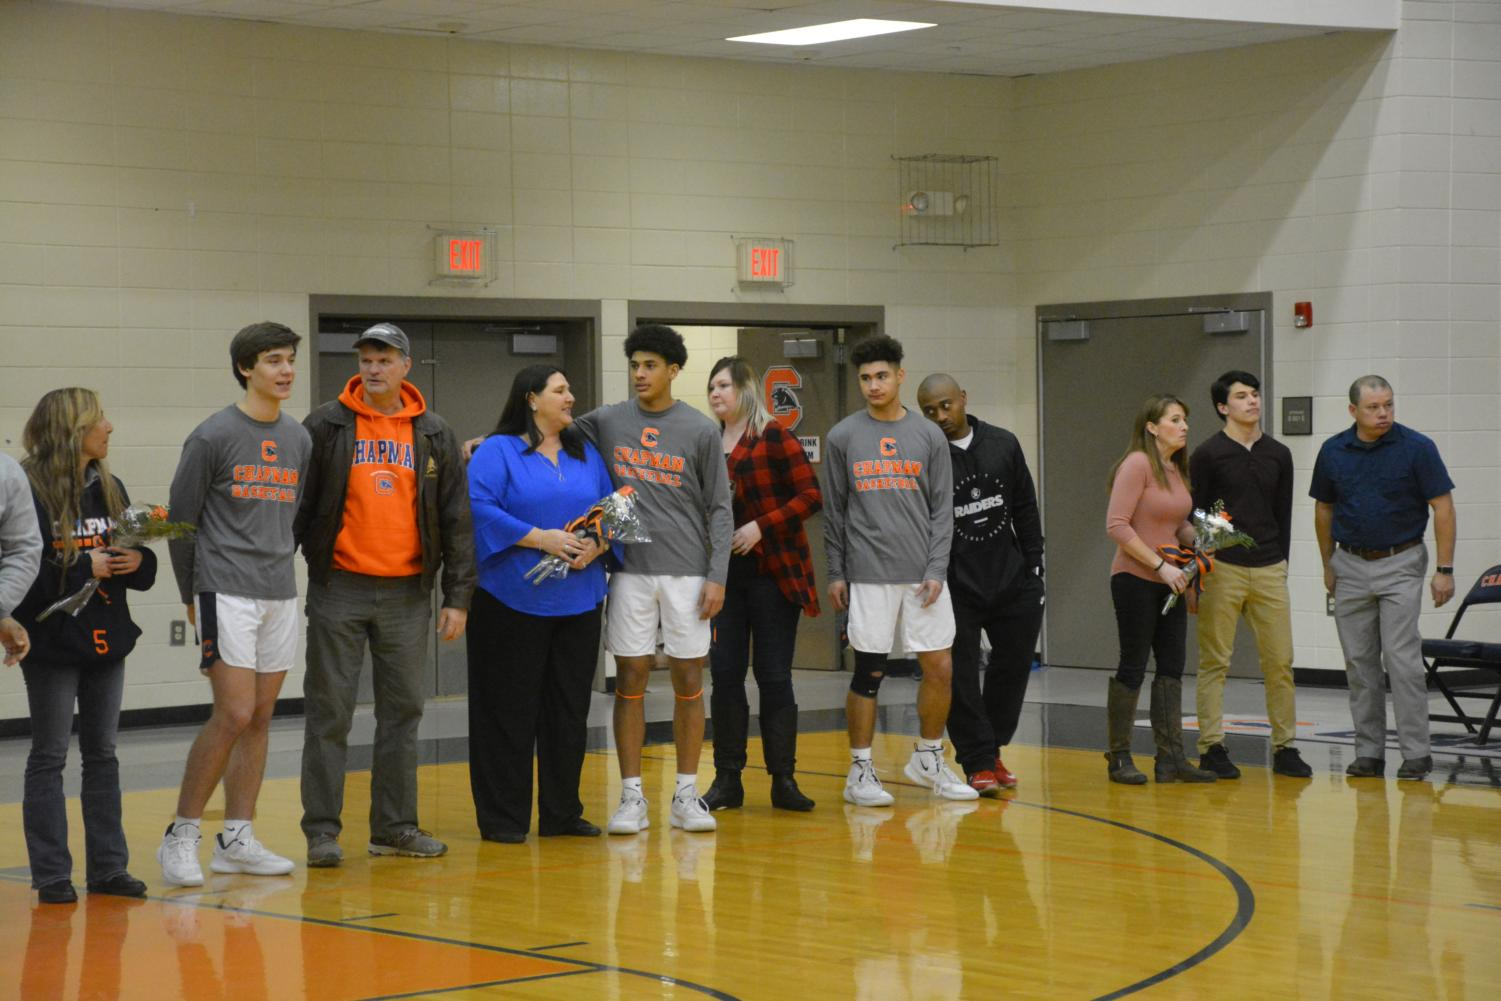 Seven seniors were recognized for their accomplishments over the past four years at the winter sports senior night.